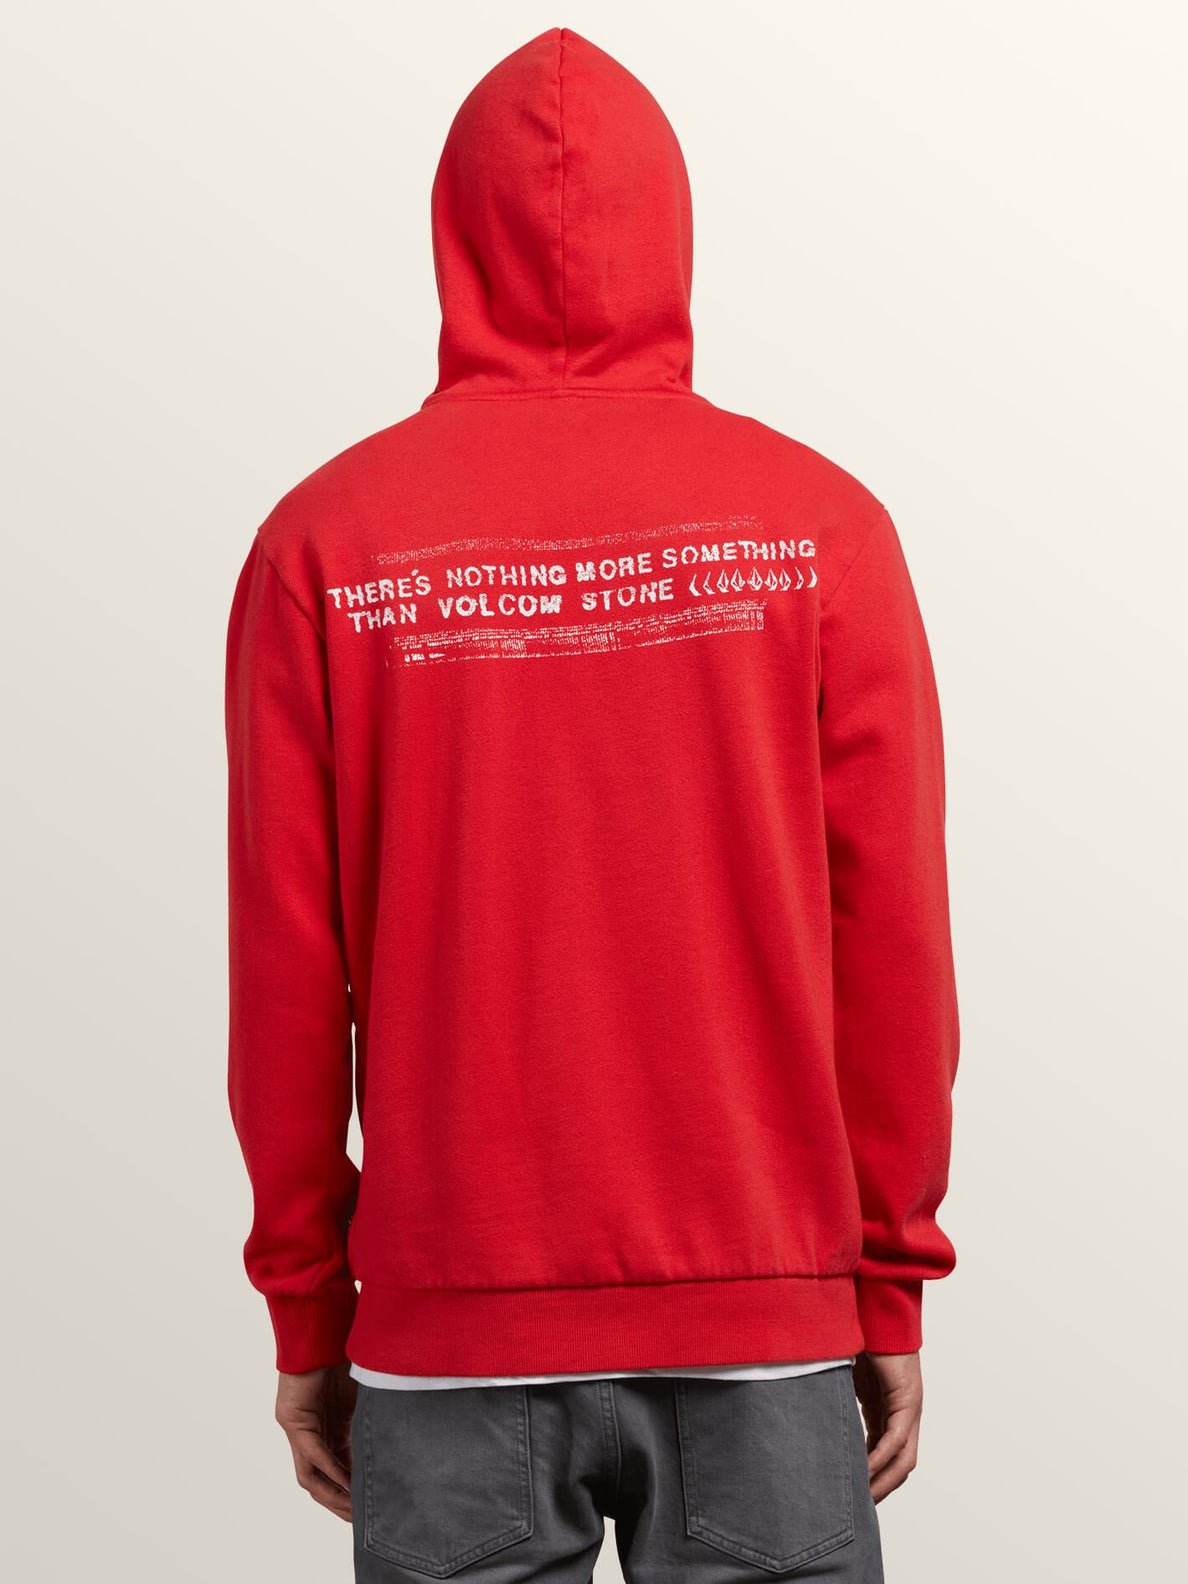 Thrifter Pullover Hoodie In Spark Red, Back View